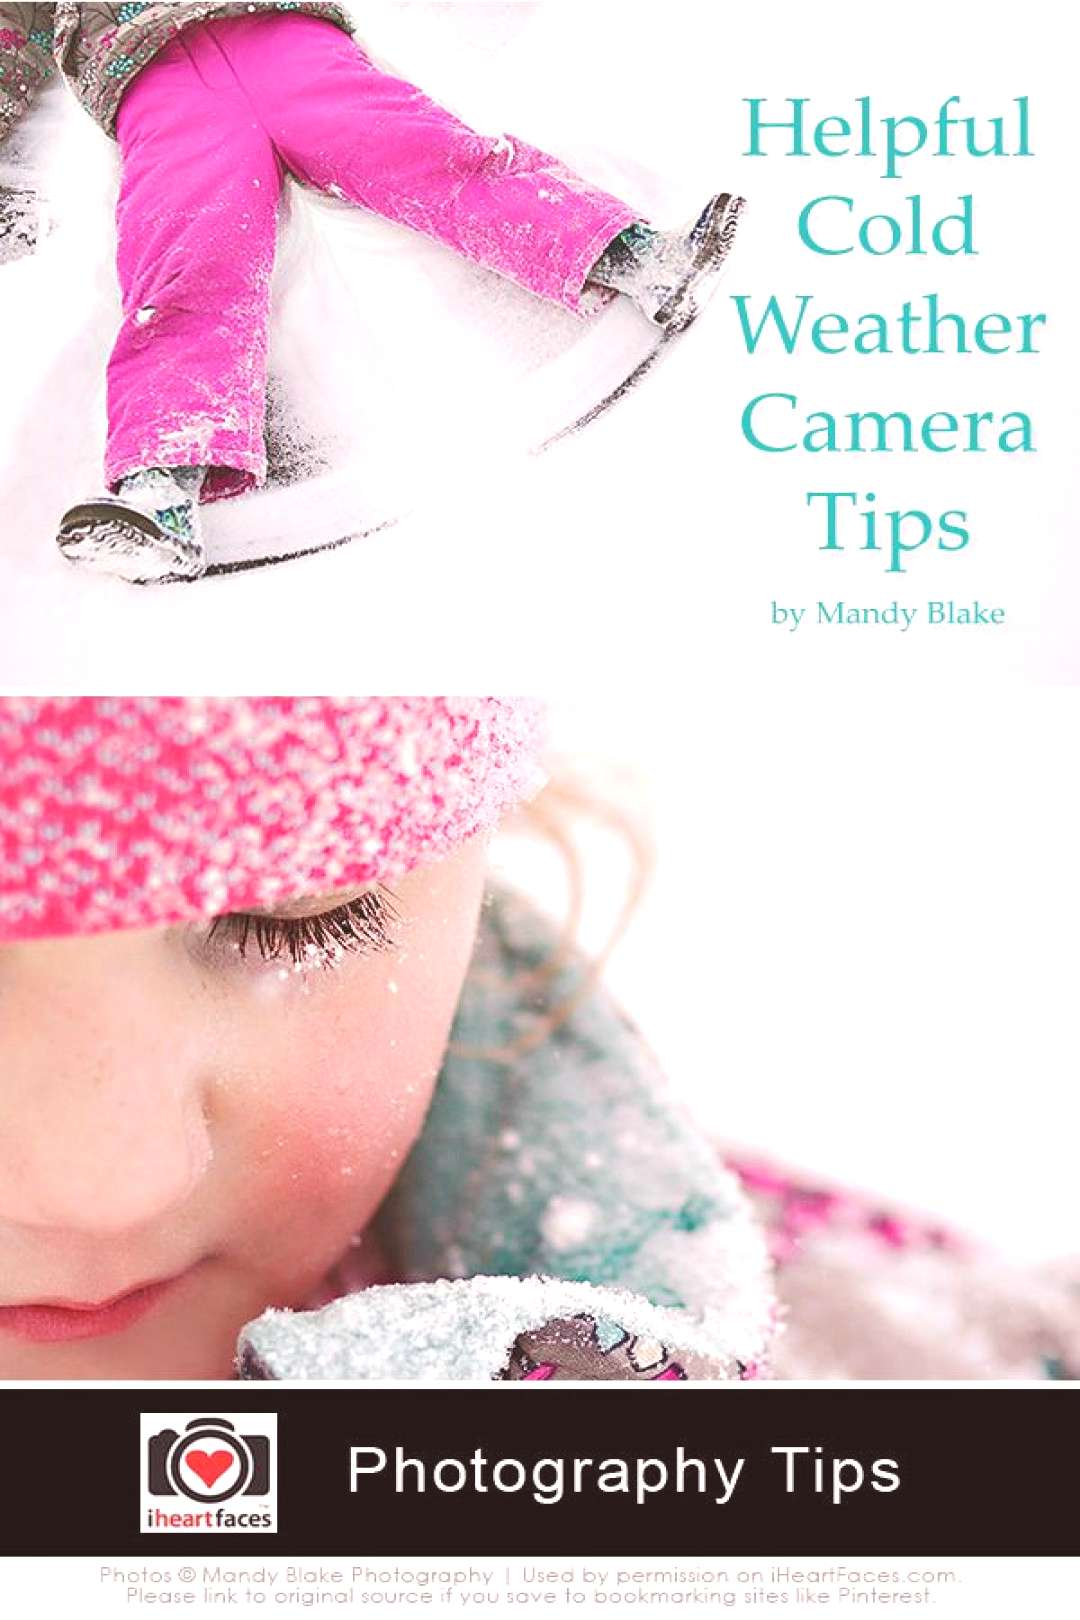 Protect that camera gear! 5 Great Cold Weather Camera Tips by Mandy Blake for